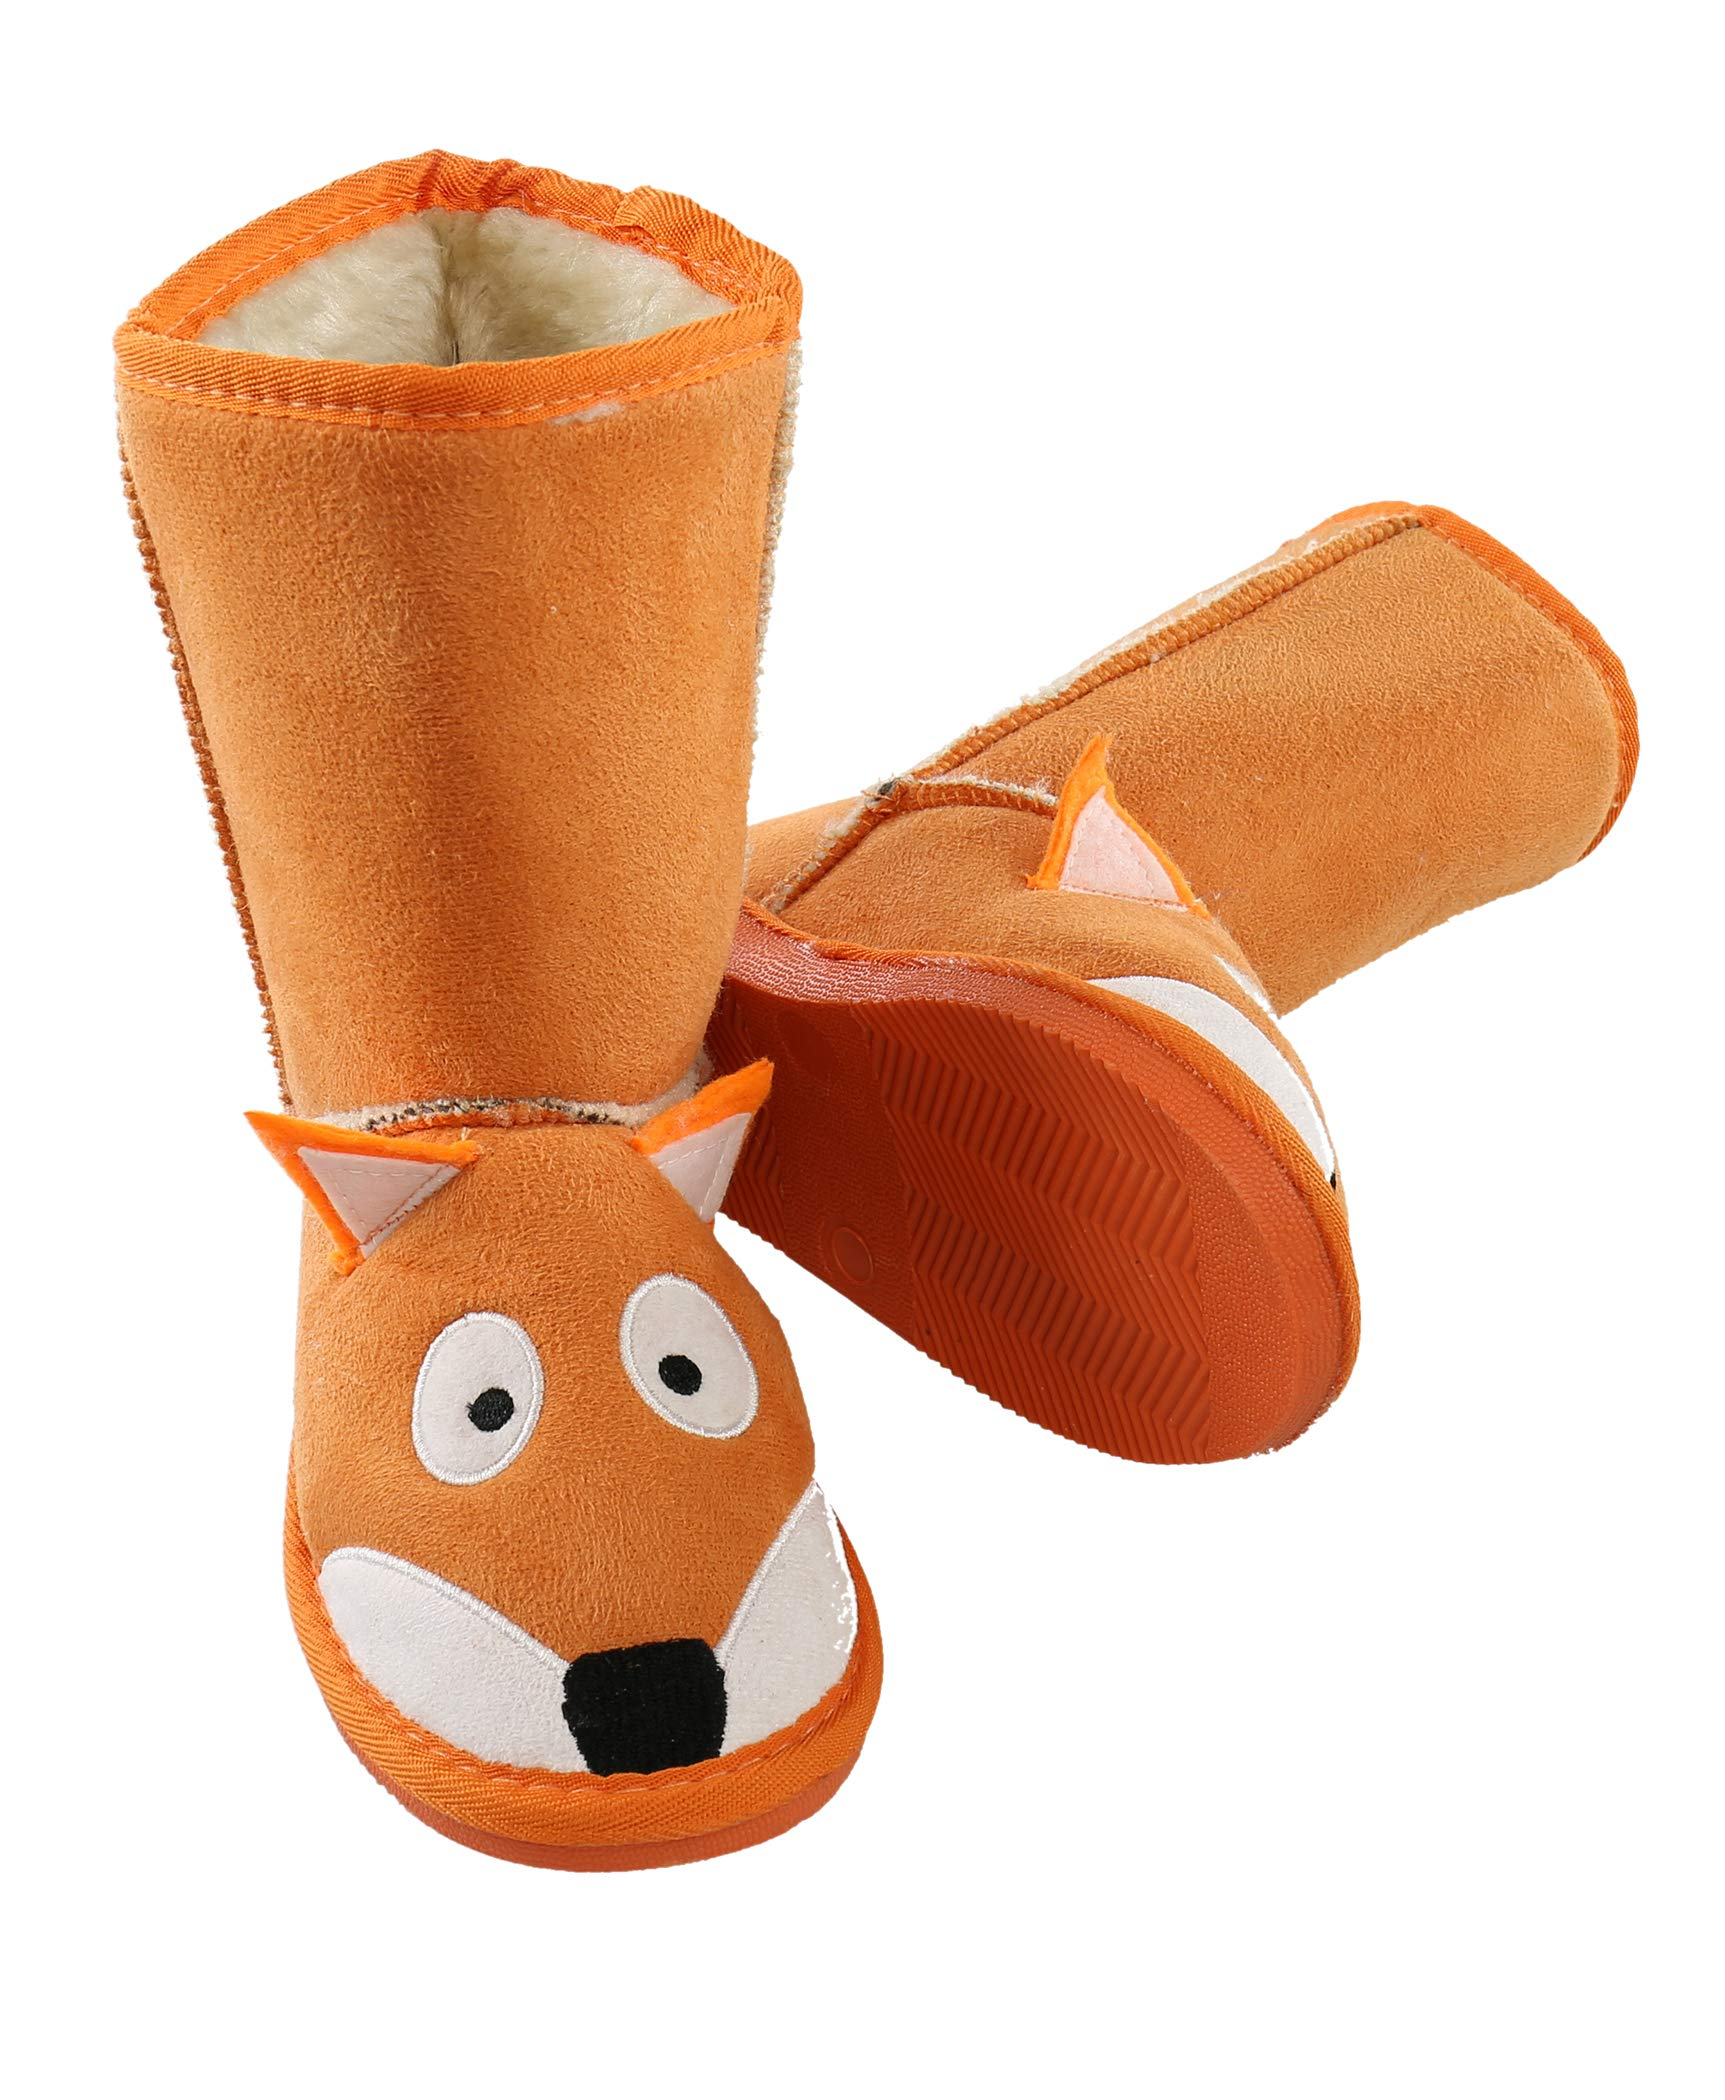 Fox Toasty Toez Cute Animal Character Slippers for Kids by LazyOne | Boys and Girls Creature Slipper Boots (Medium)